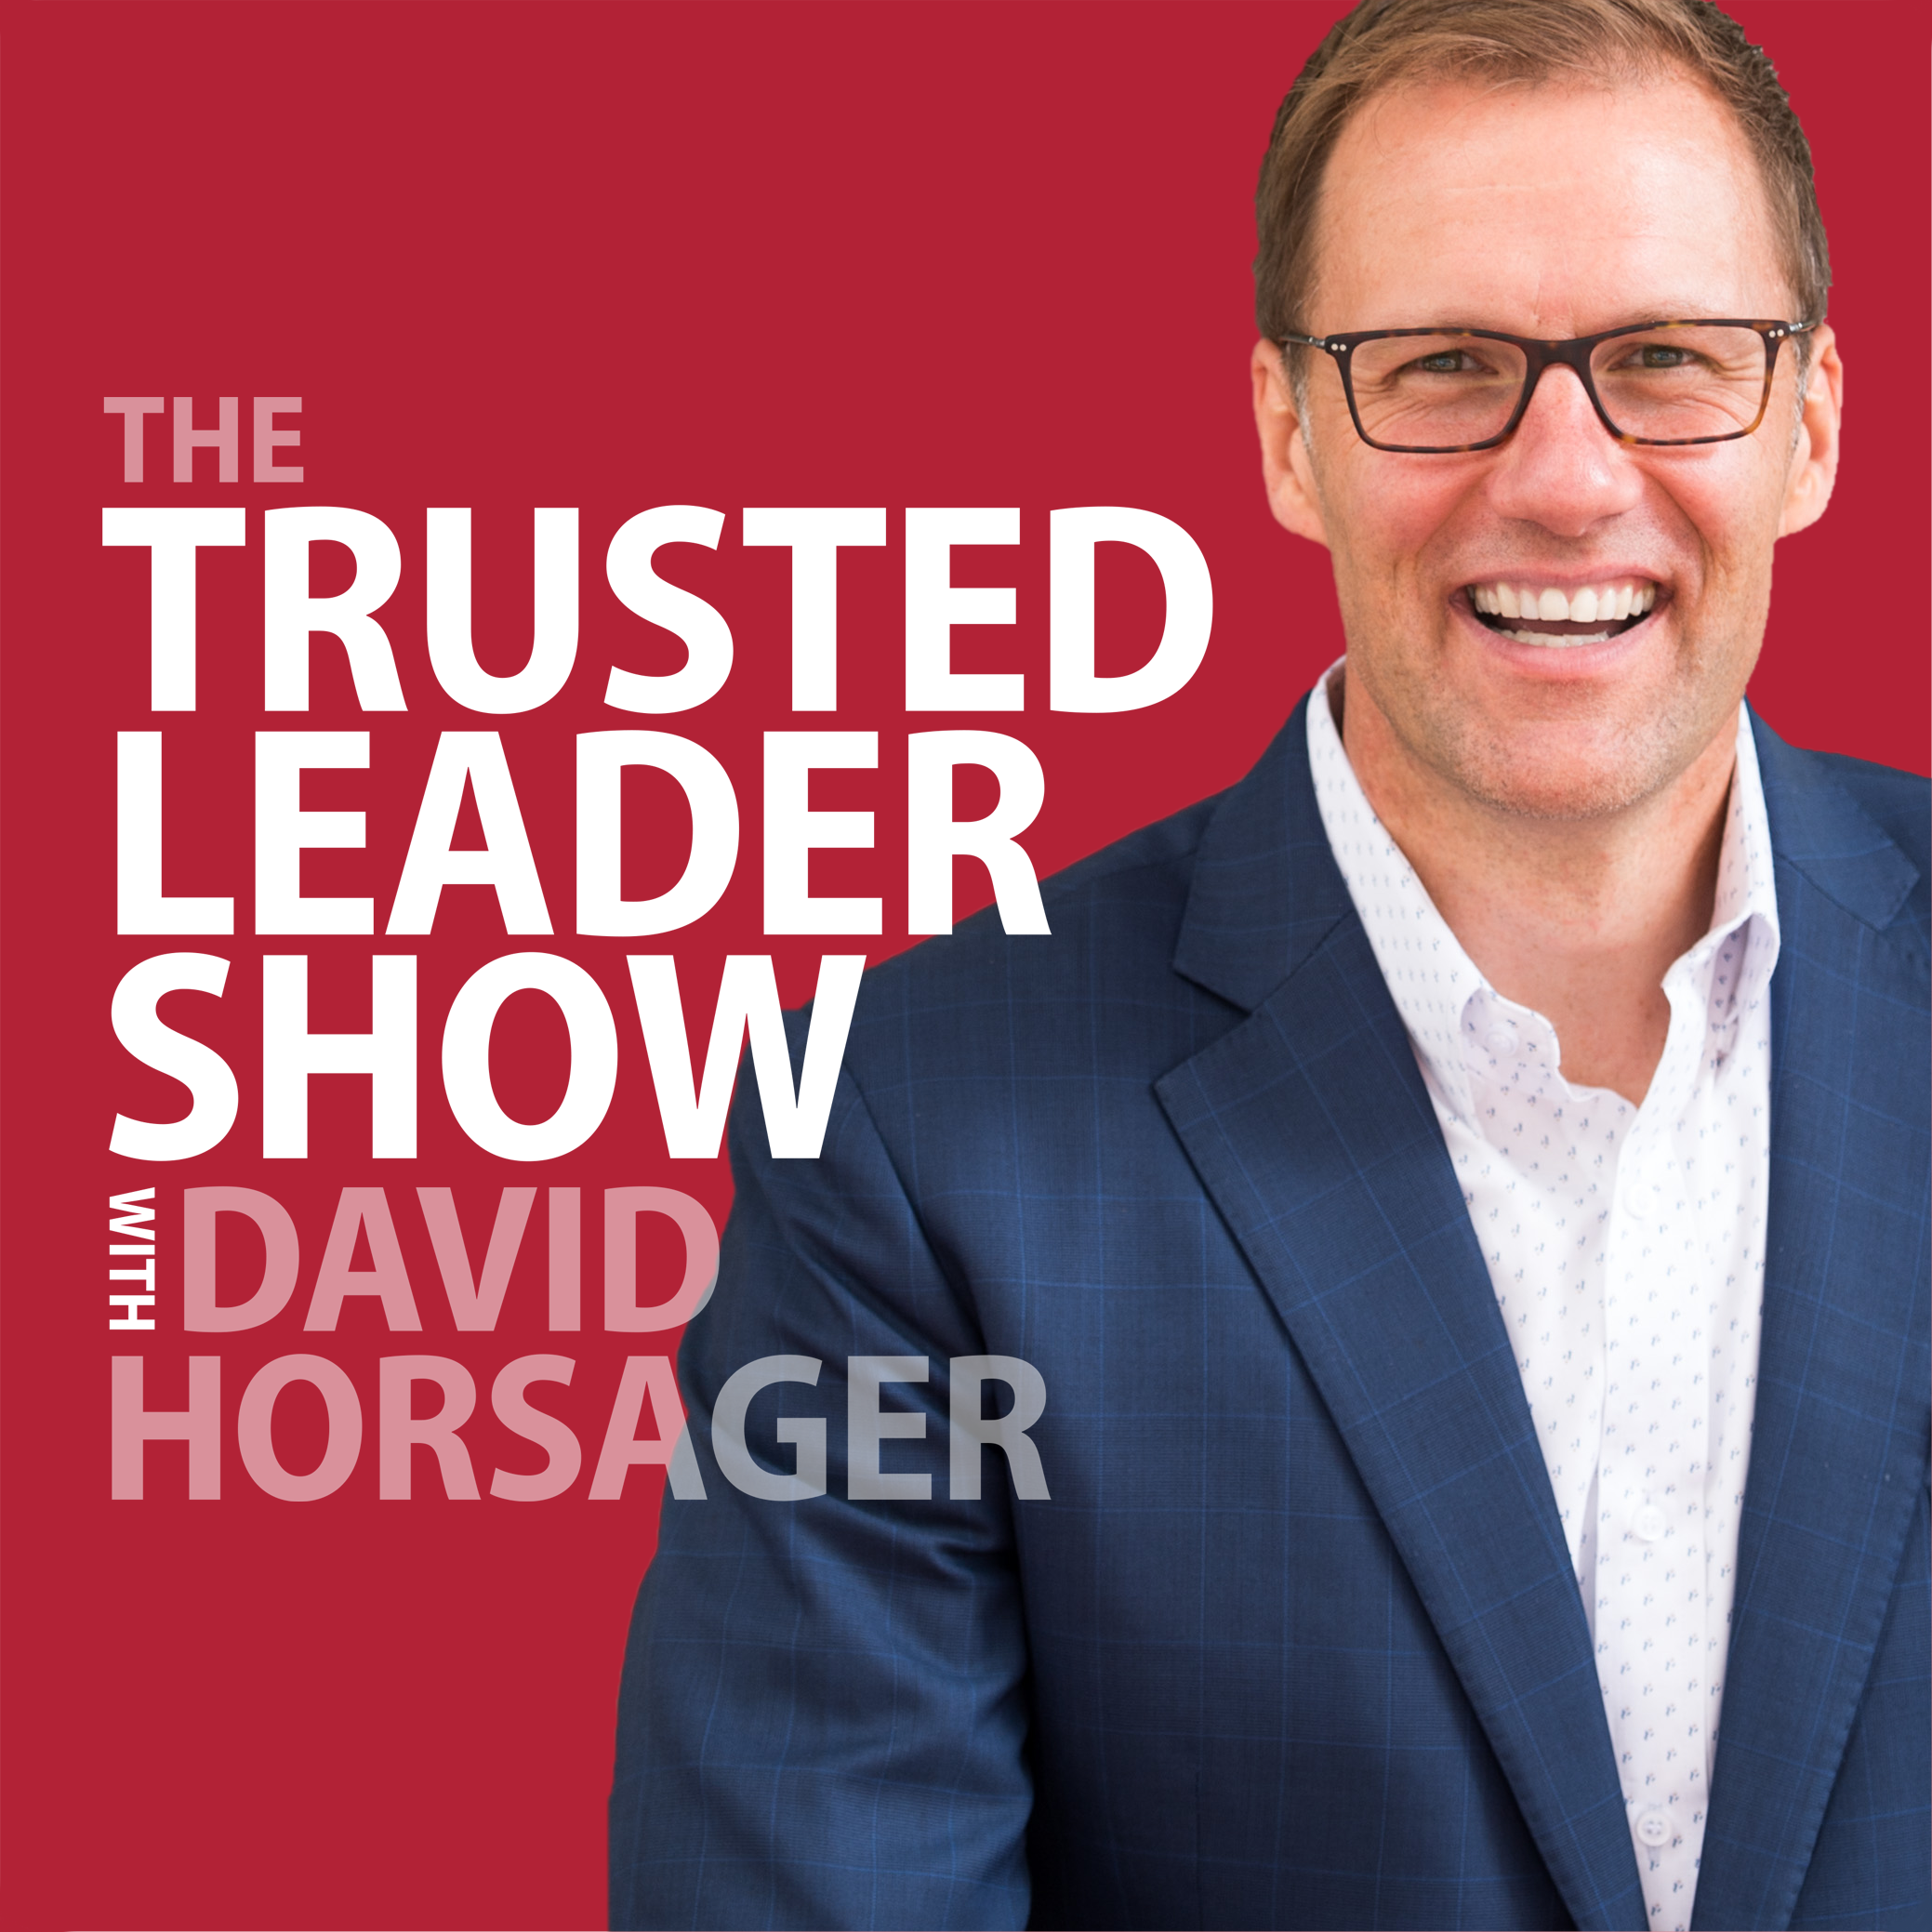 The Trusted Leader Show show art